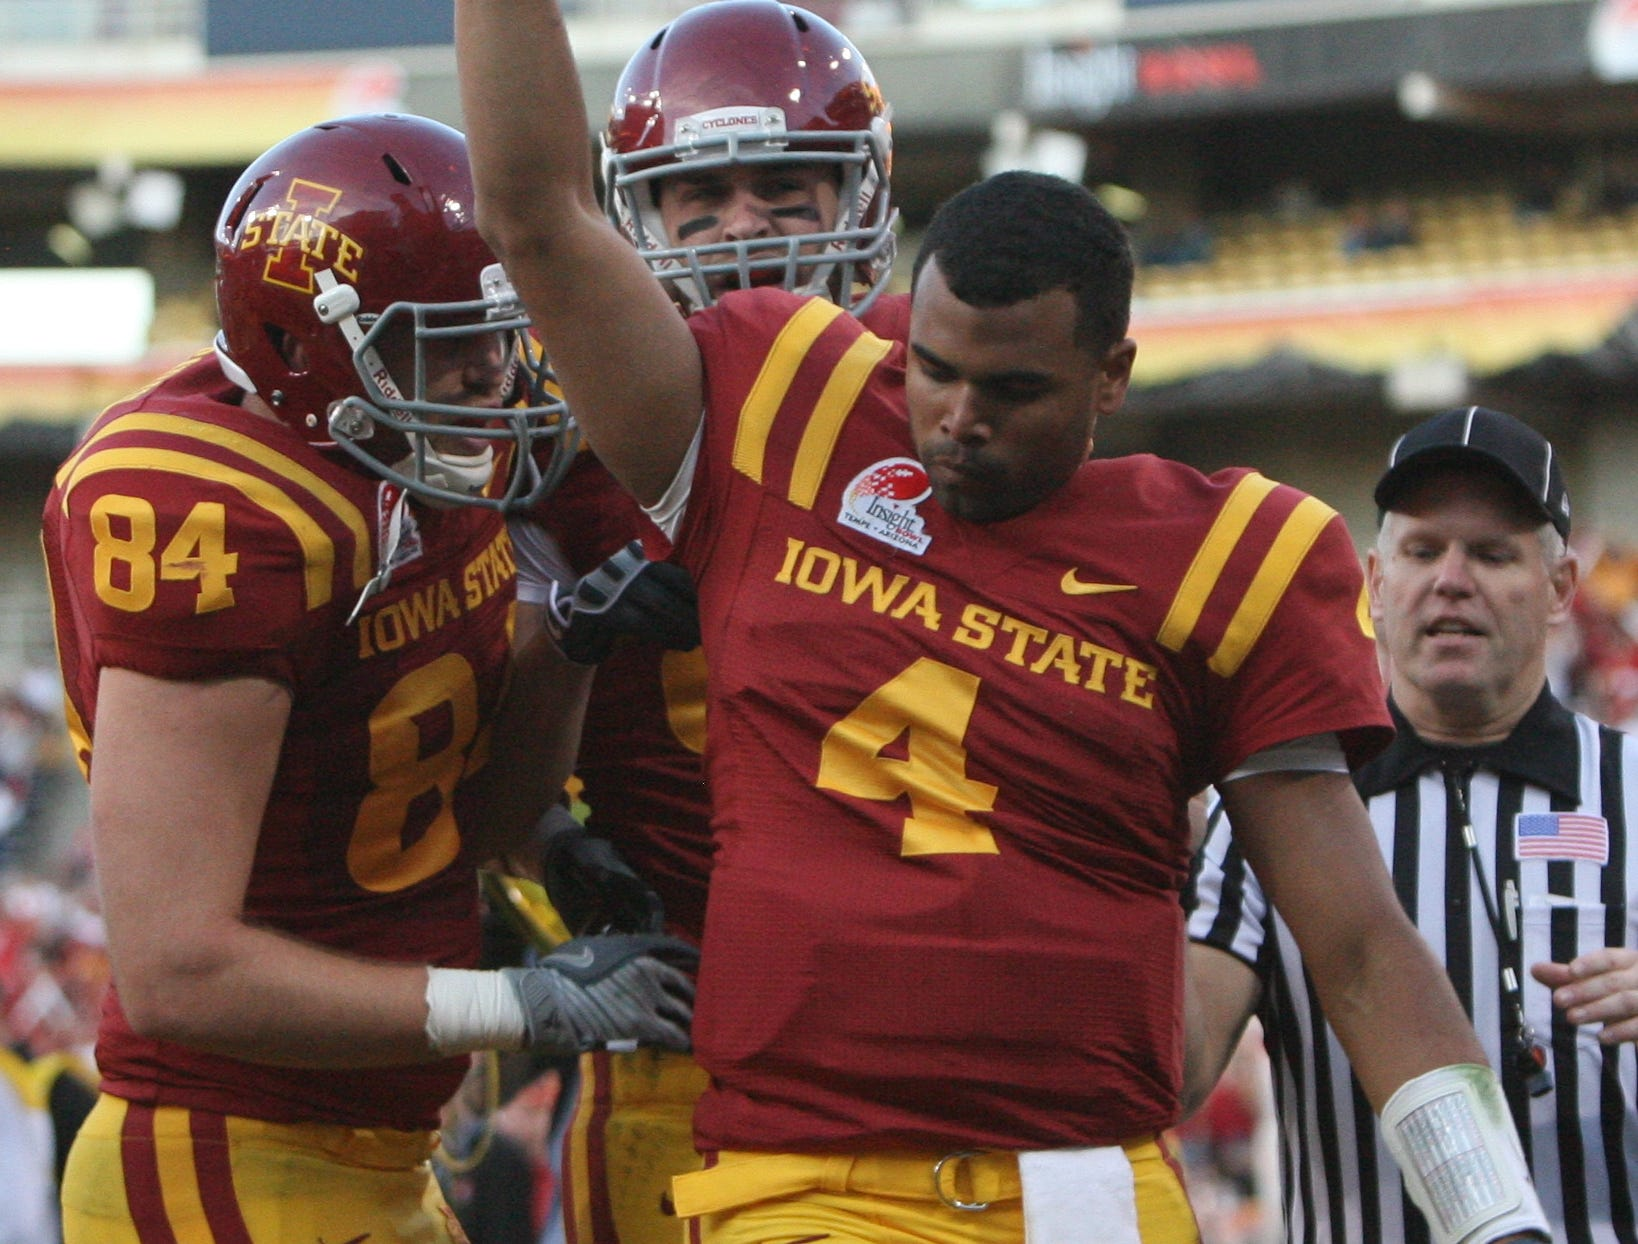 ISU's Austen Arnaud celebrates the Cyclone's first touchdown with his teammates. S0101ISUBowl -Iowa State University played Minnesota in the Insight Bowl in Tempe, Arizona, Thursday, December 31, 2009 at Sun Devil Stadium. (Andrea Melendez/The Register)